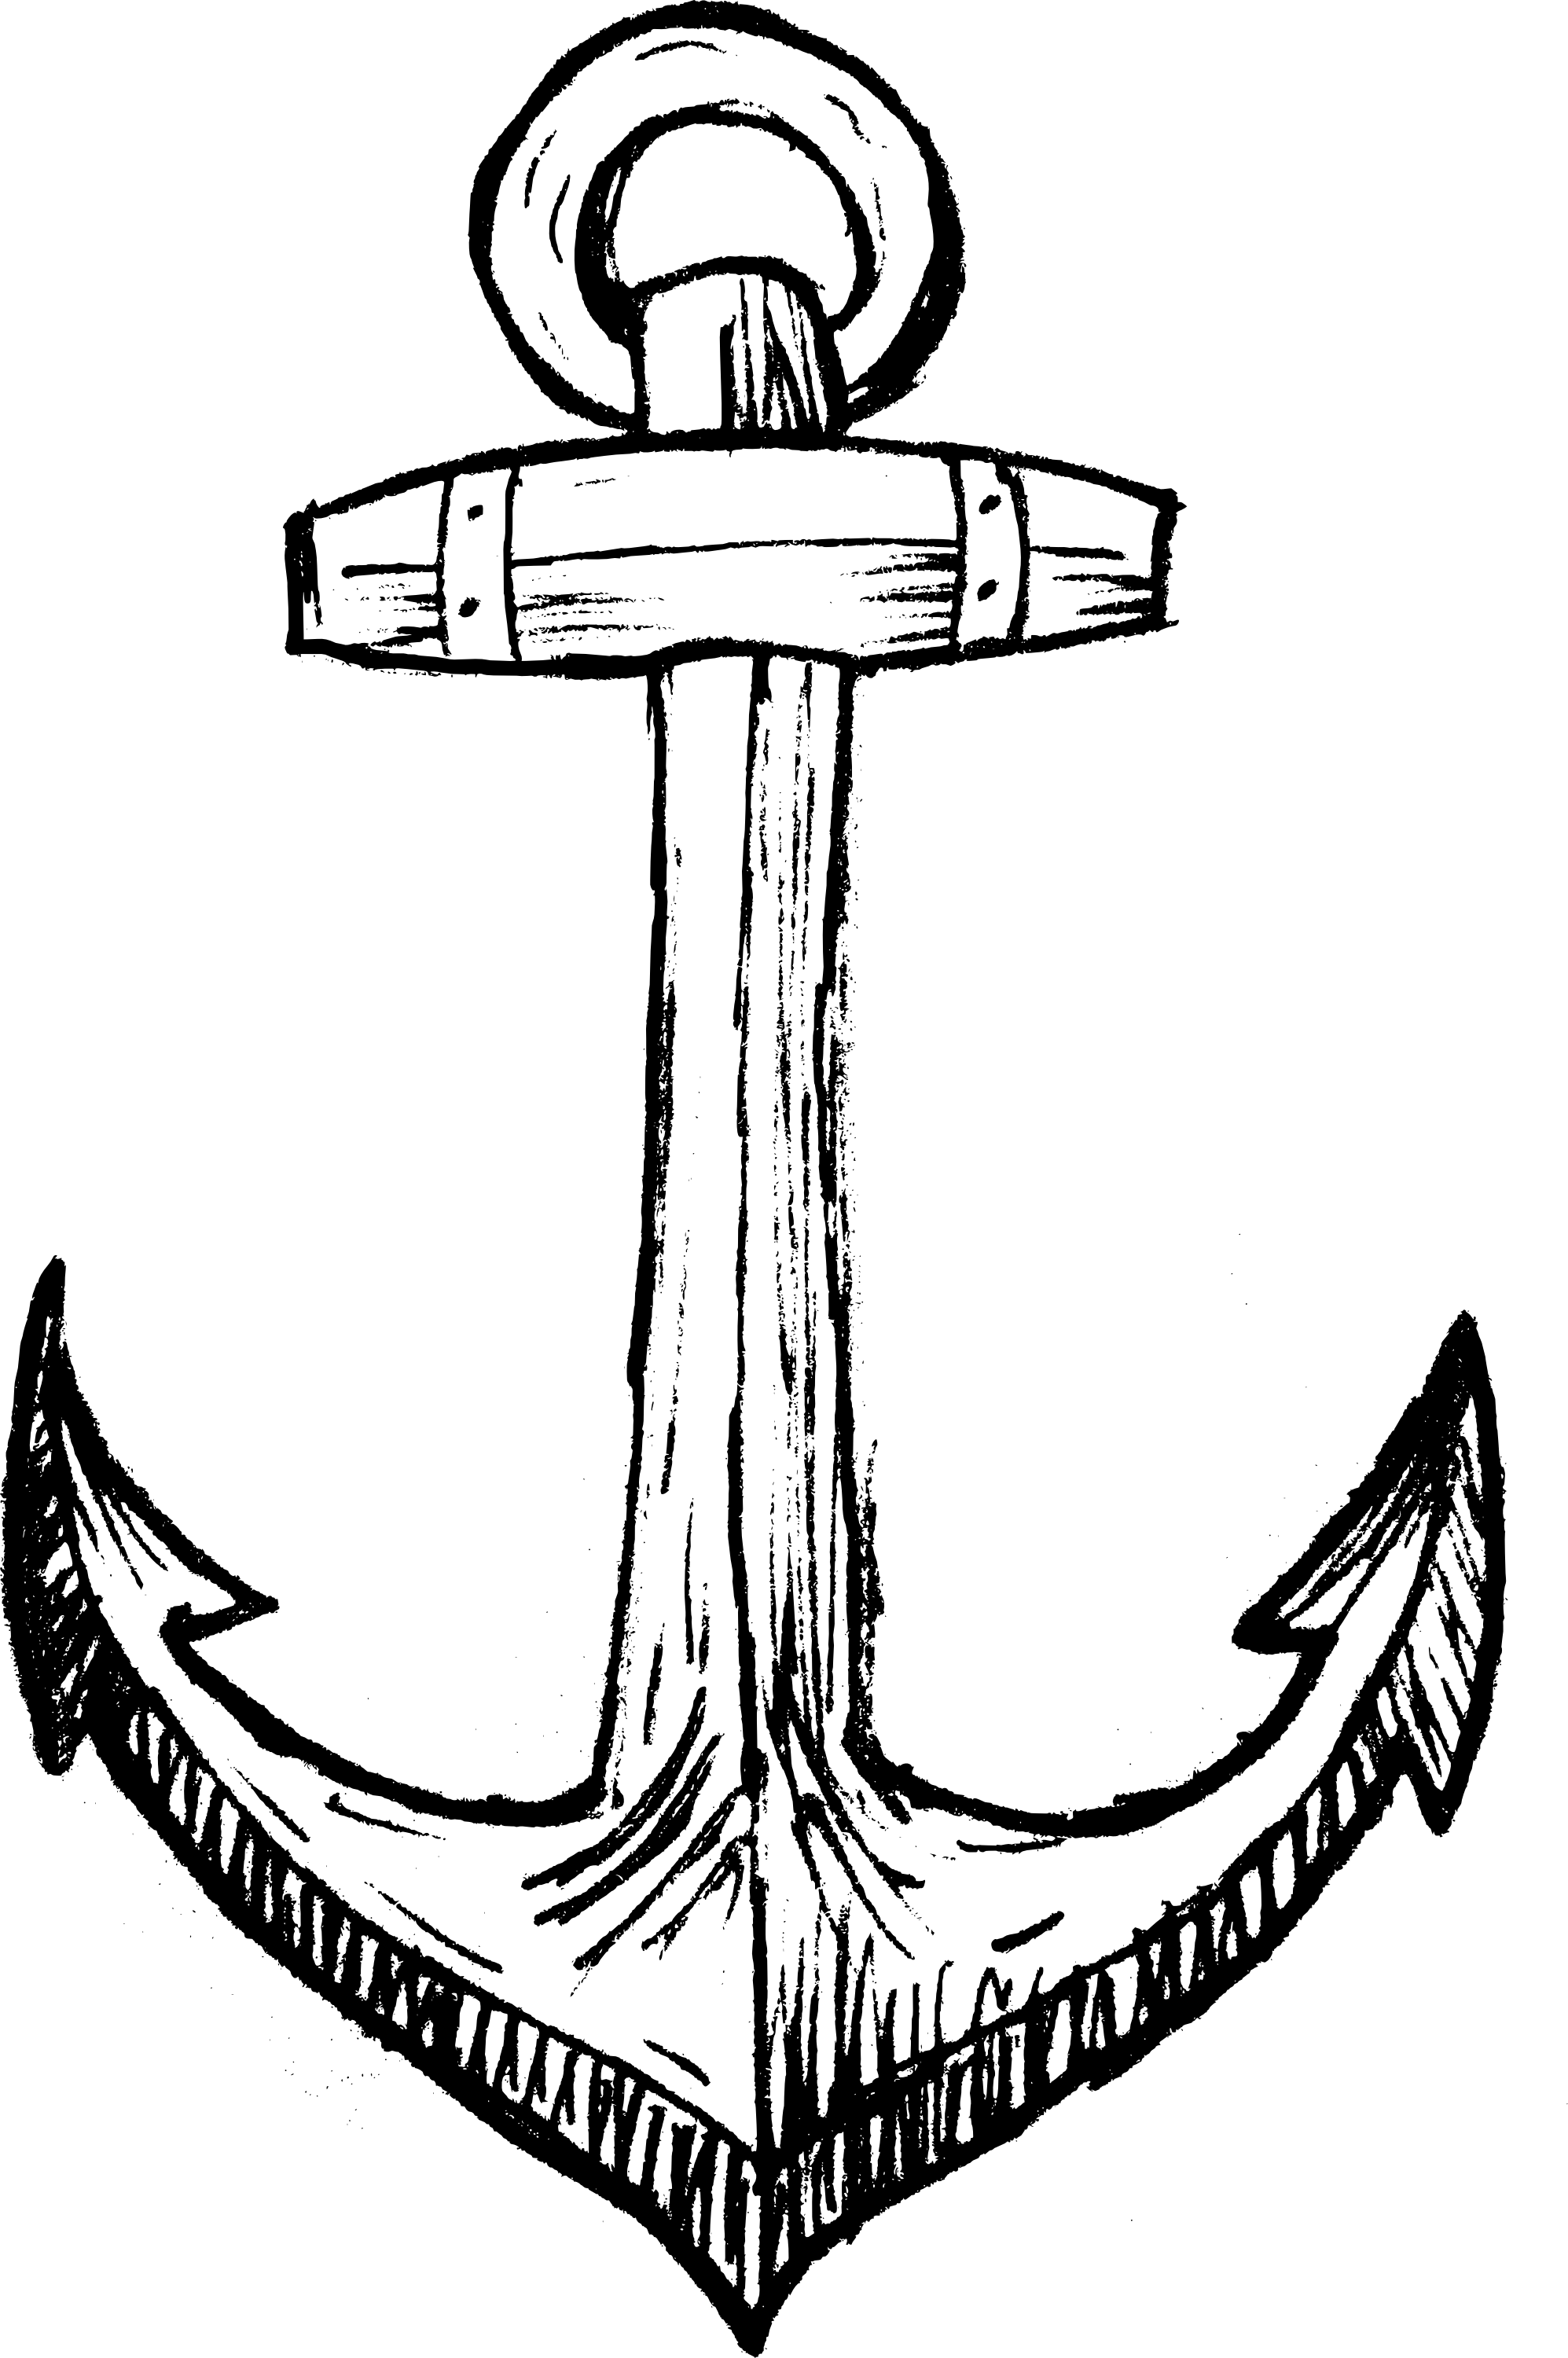 Drawn anchor transparent Com OnlyGFX 5 png) Transparent)